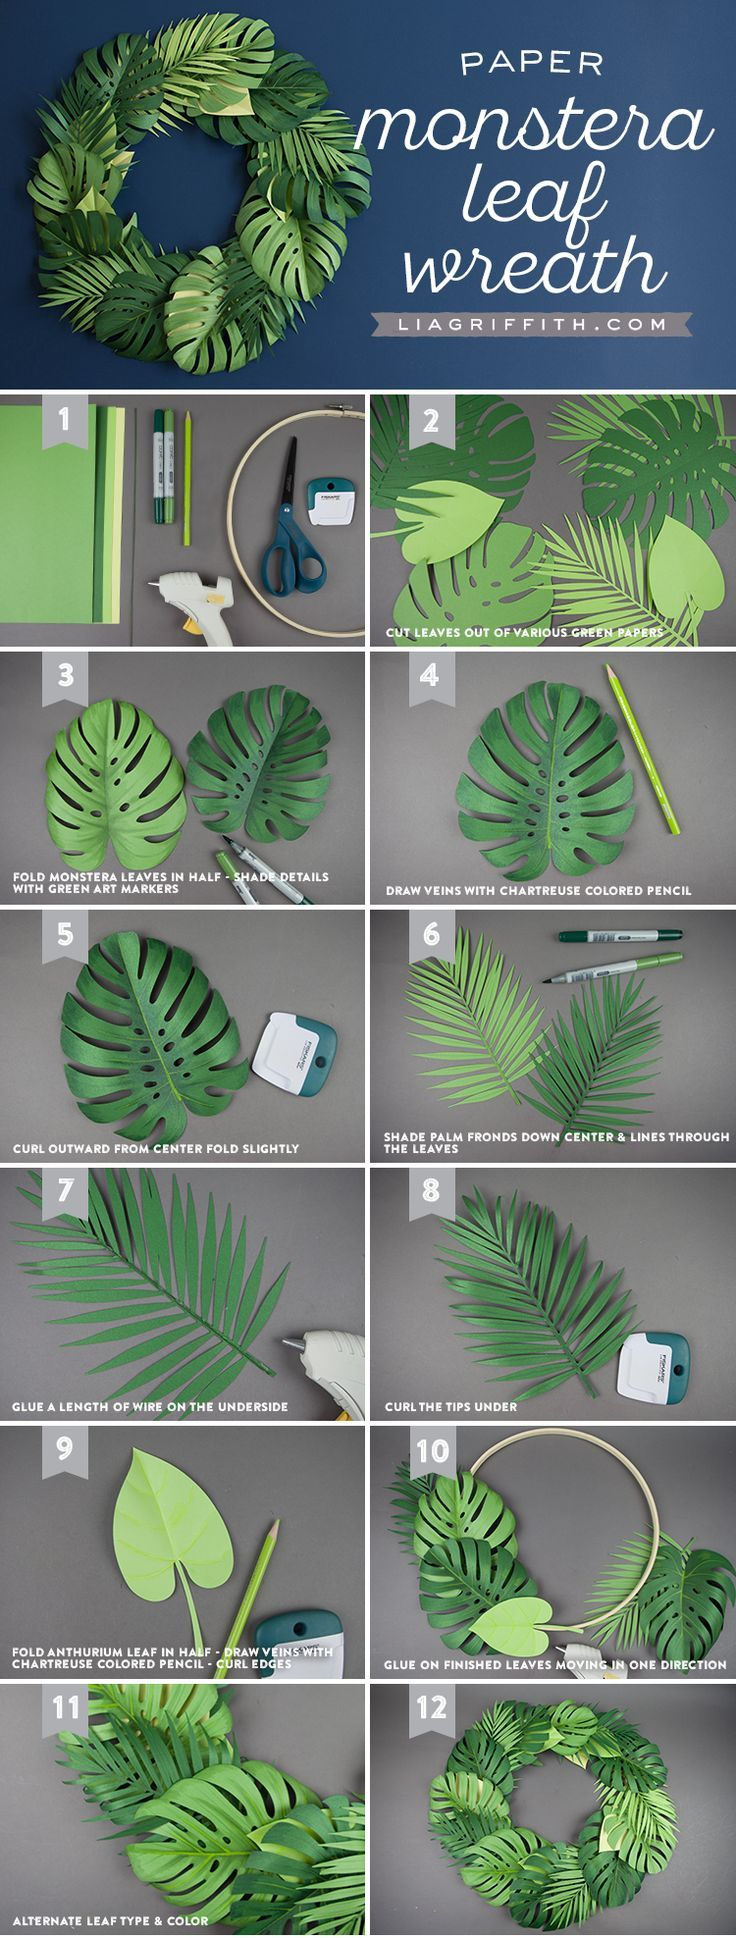 Spruce Up Your Summer: Quick & Easy Paper Monstera Leaf Wreath